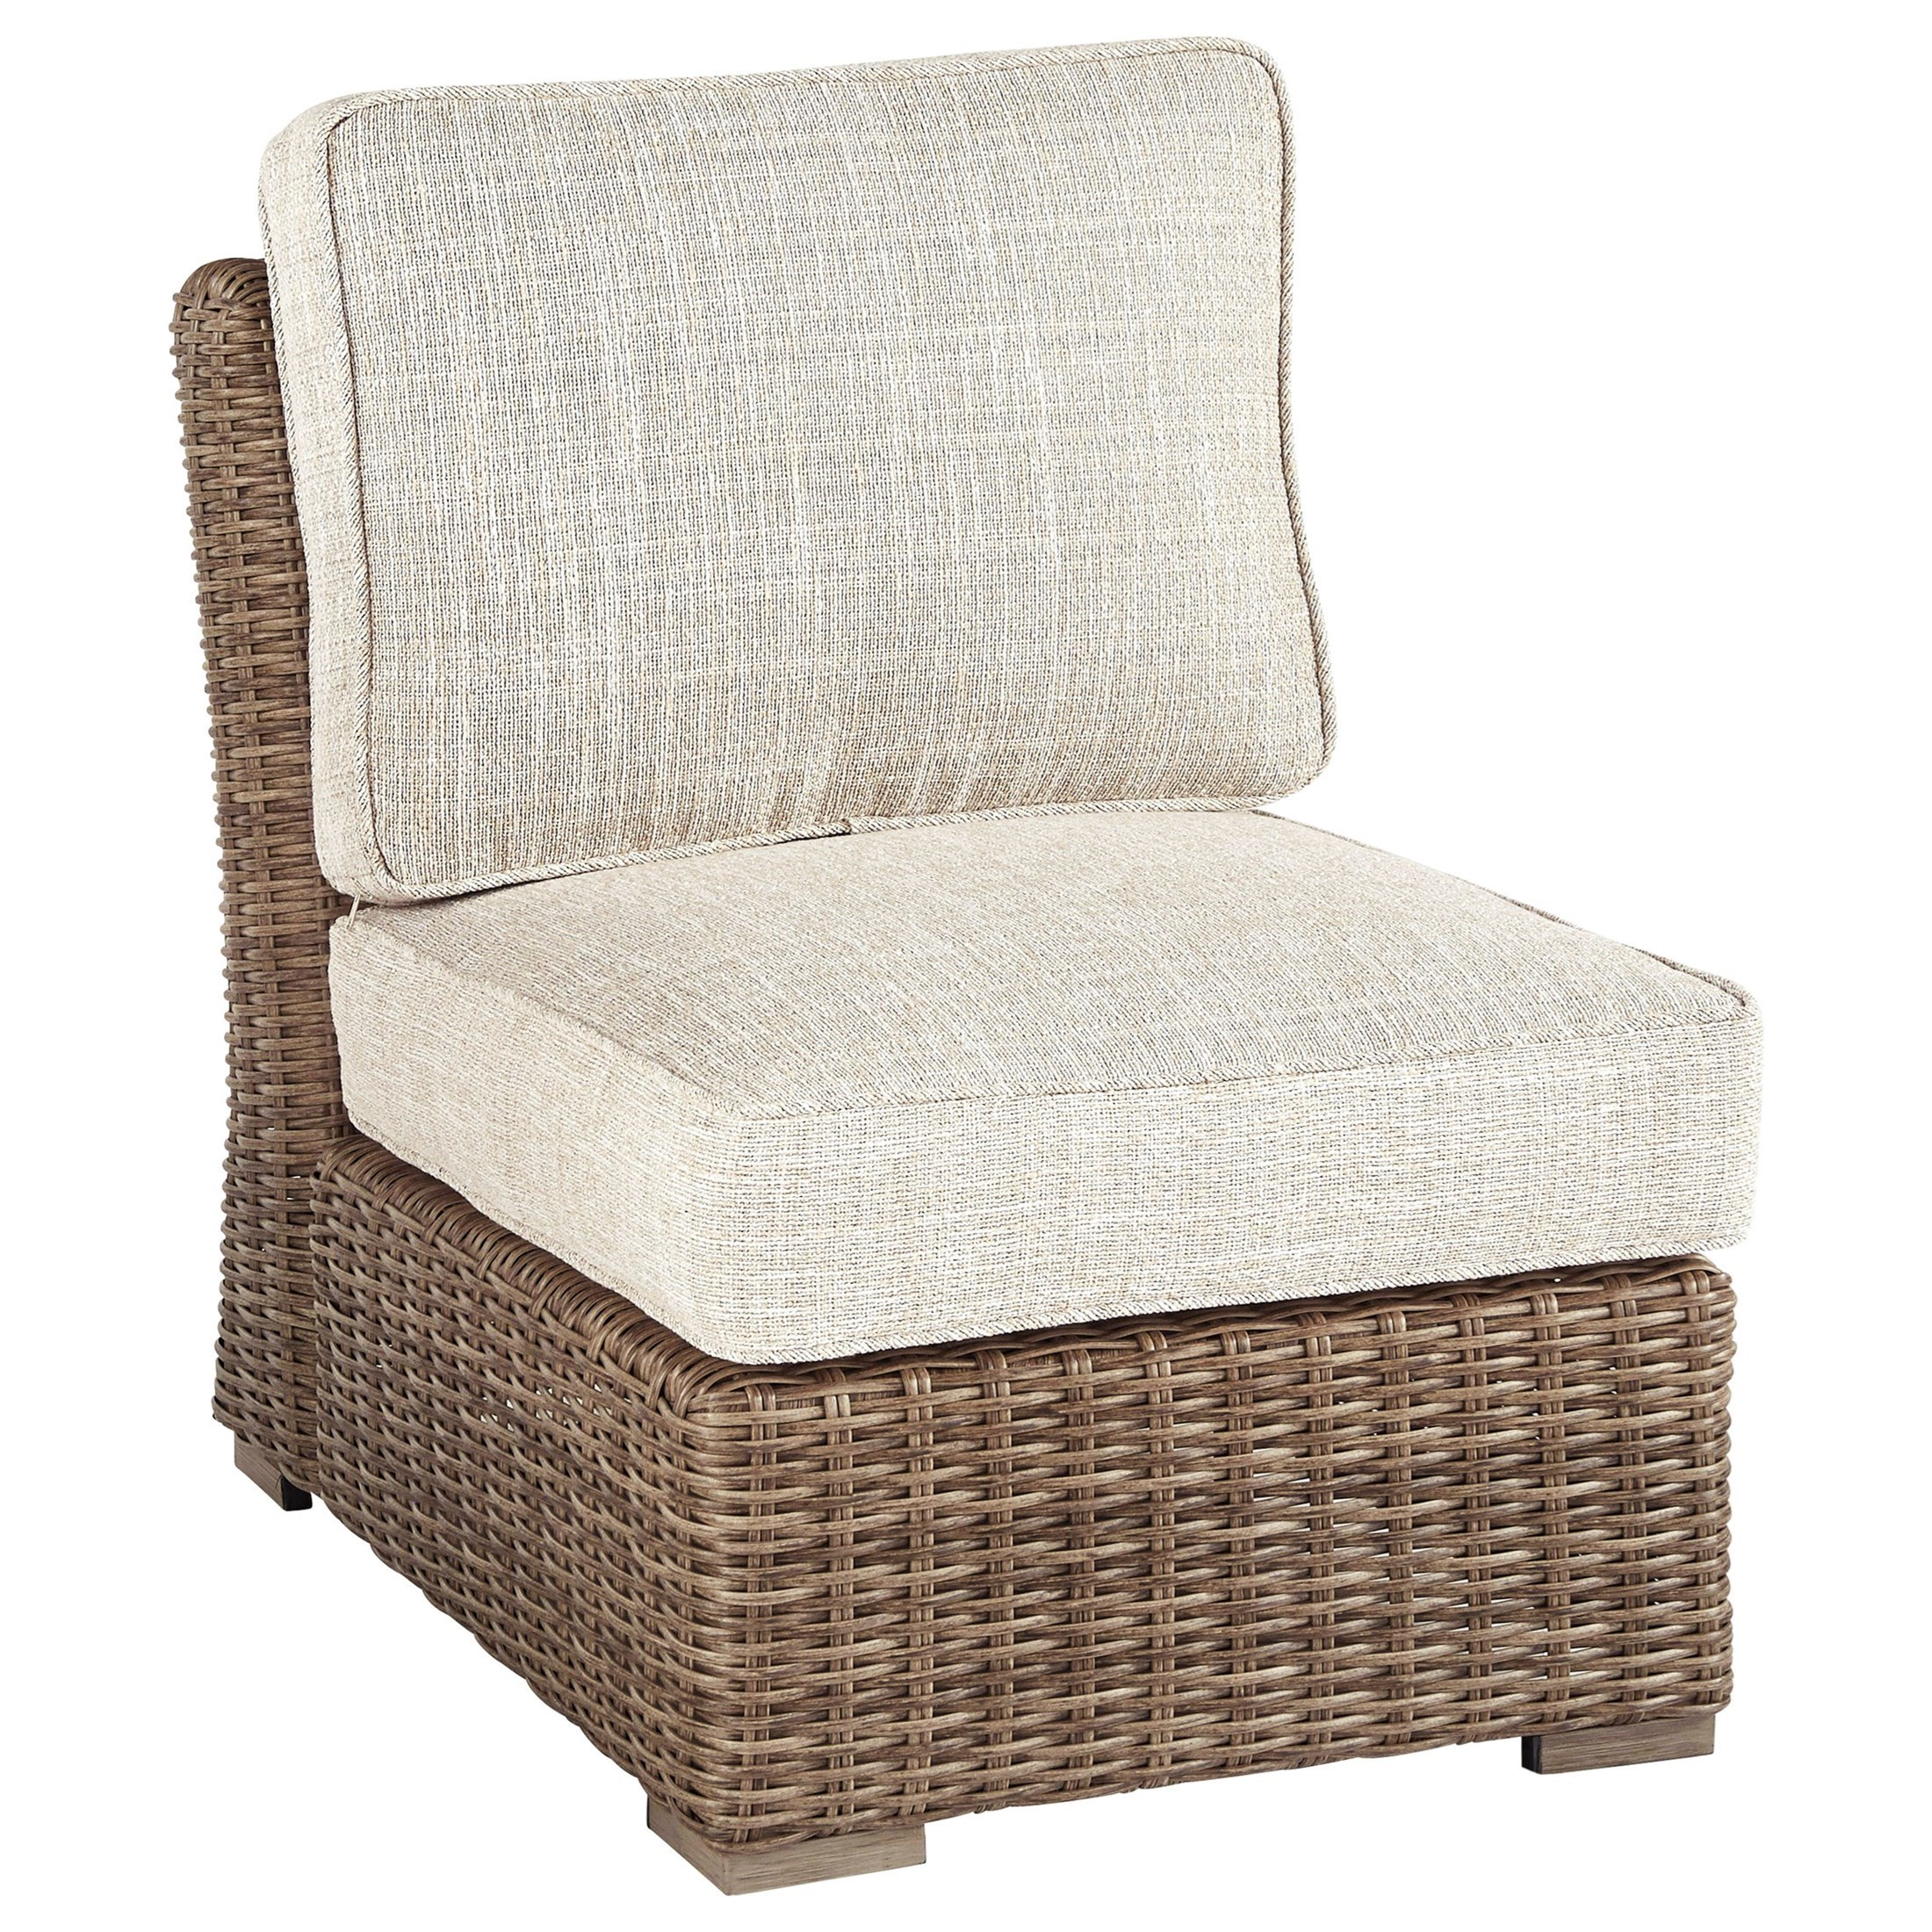 Beachcroft Armless Chair with Cushion by Signature Design by Ashley at Lapeer Furniture & Mattress Center